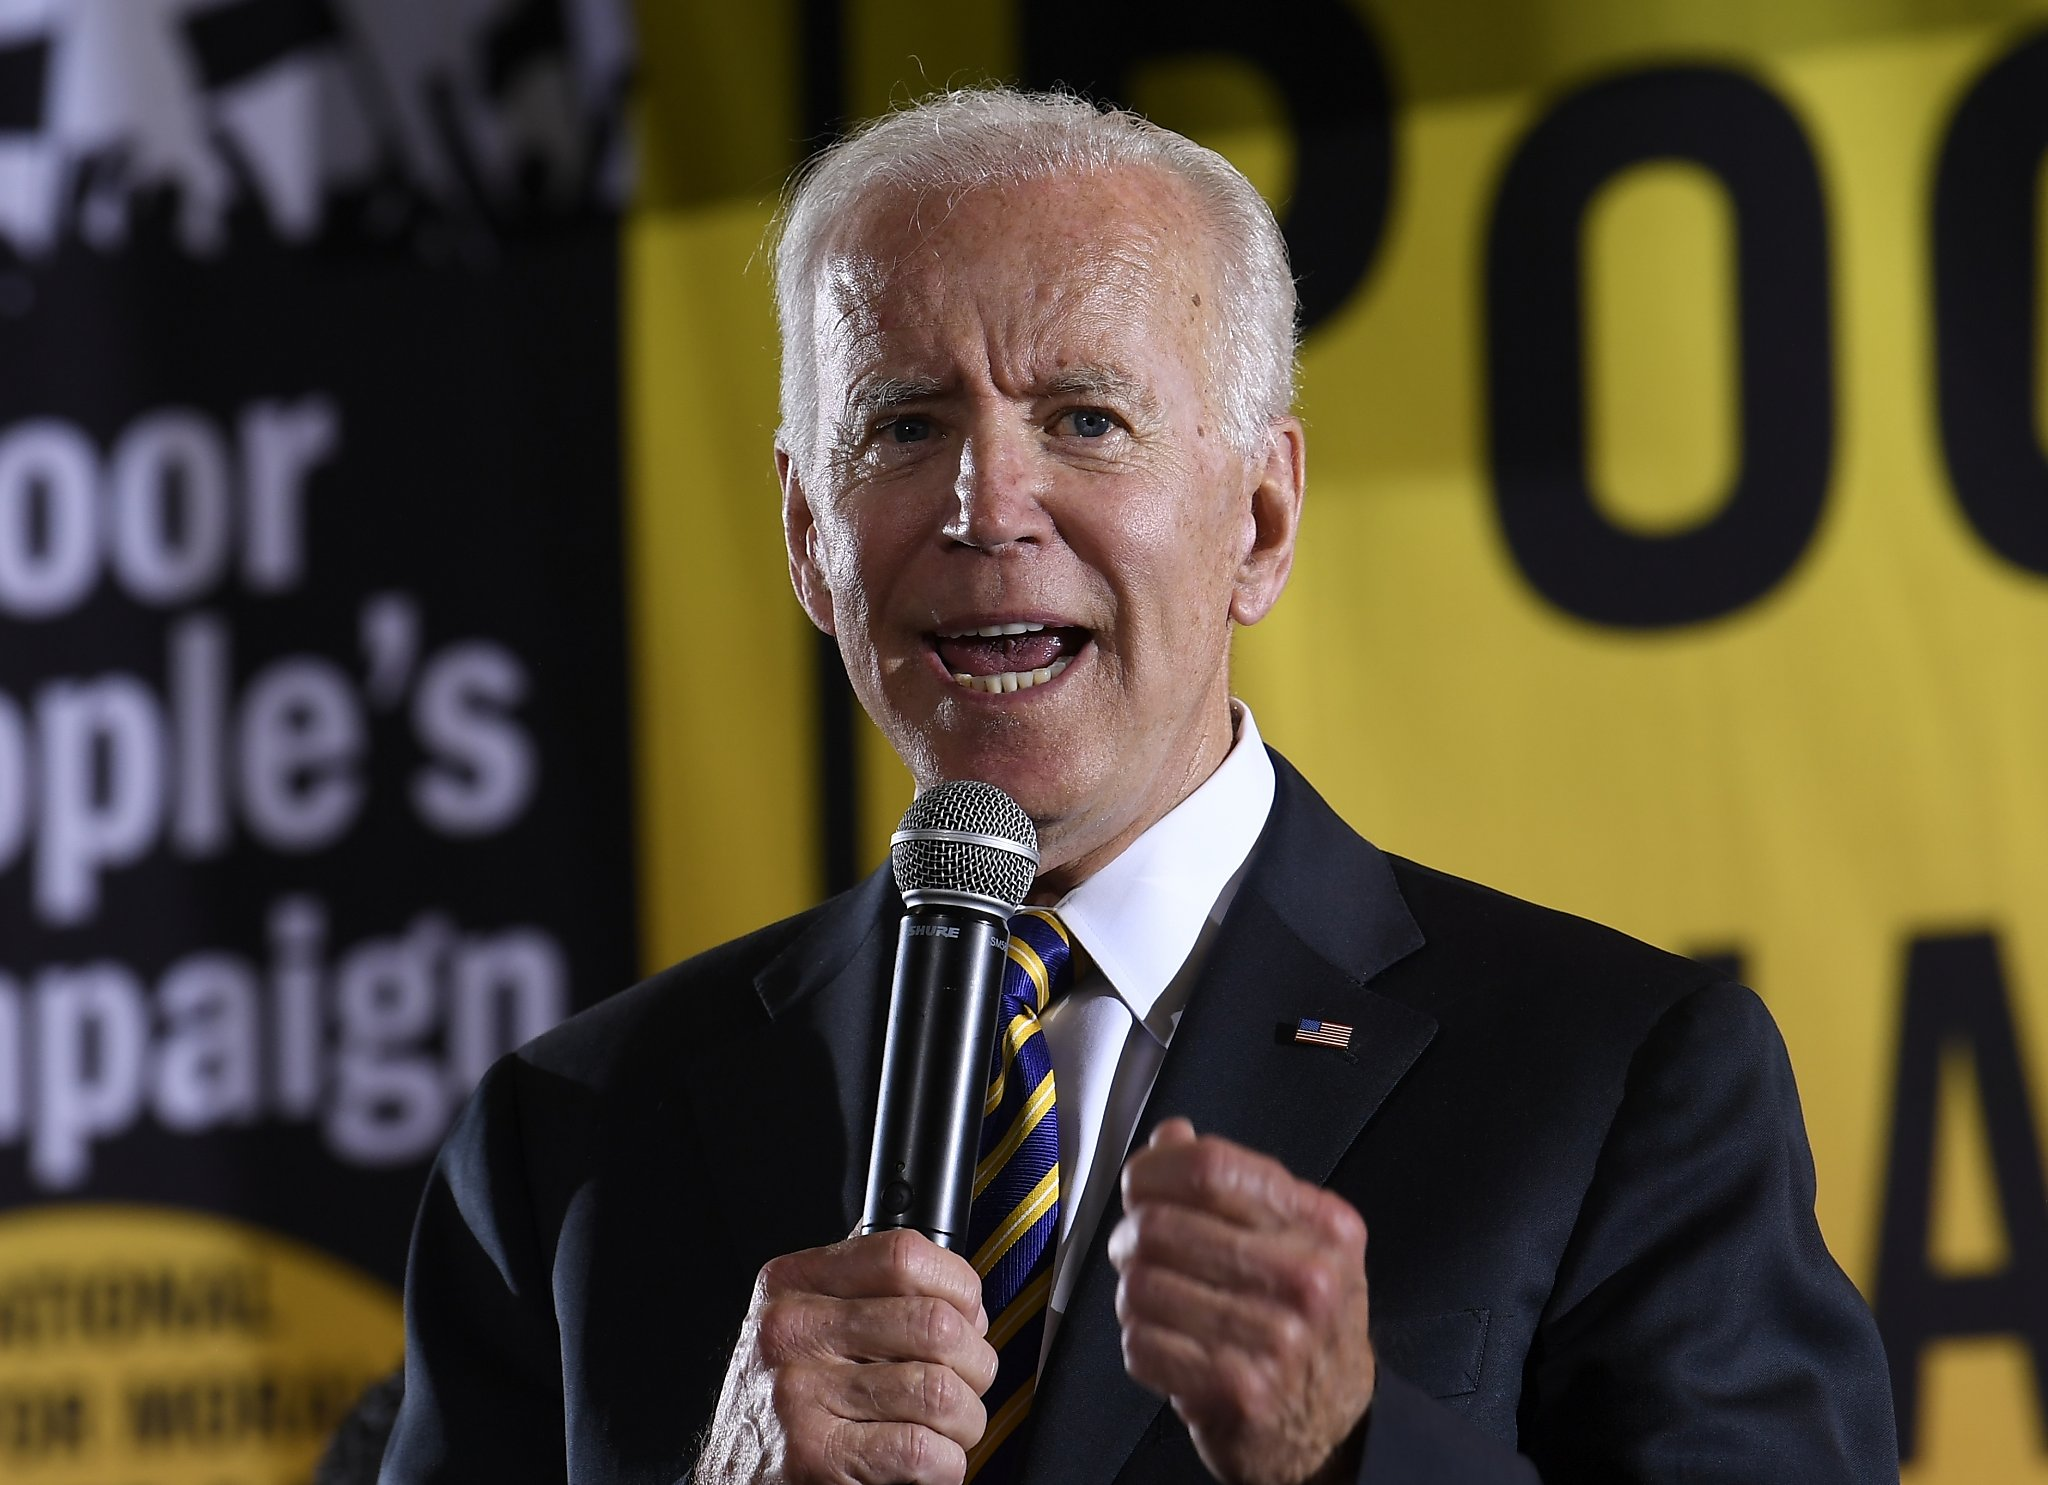 Teflon Joe: Alleged gaffe gives Biden boost in poll